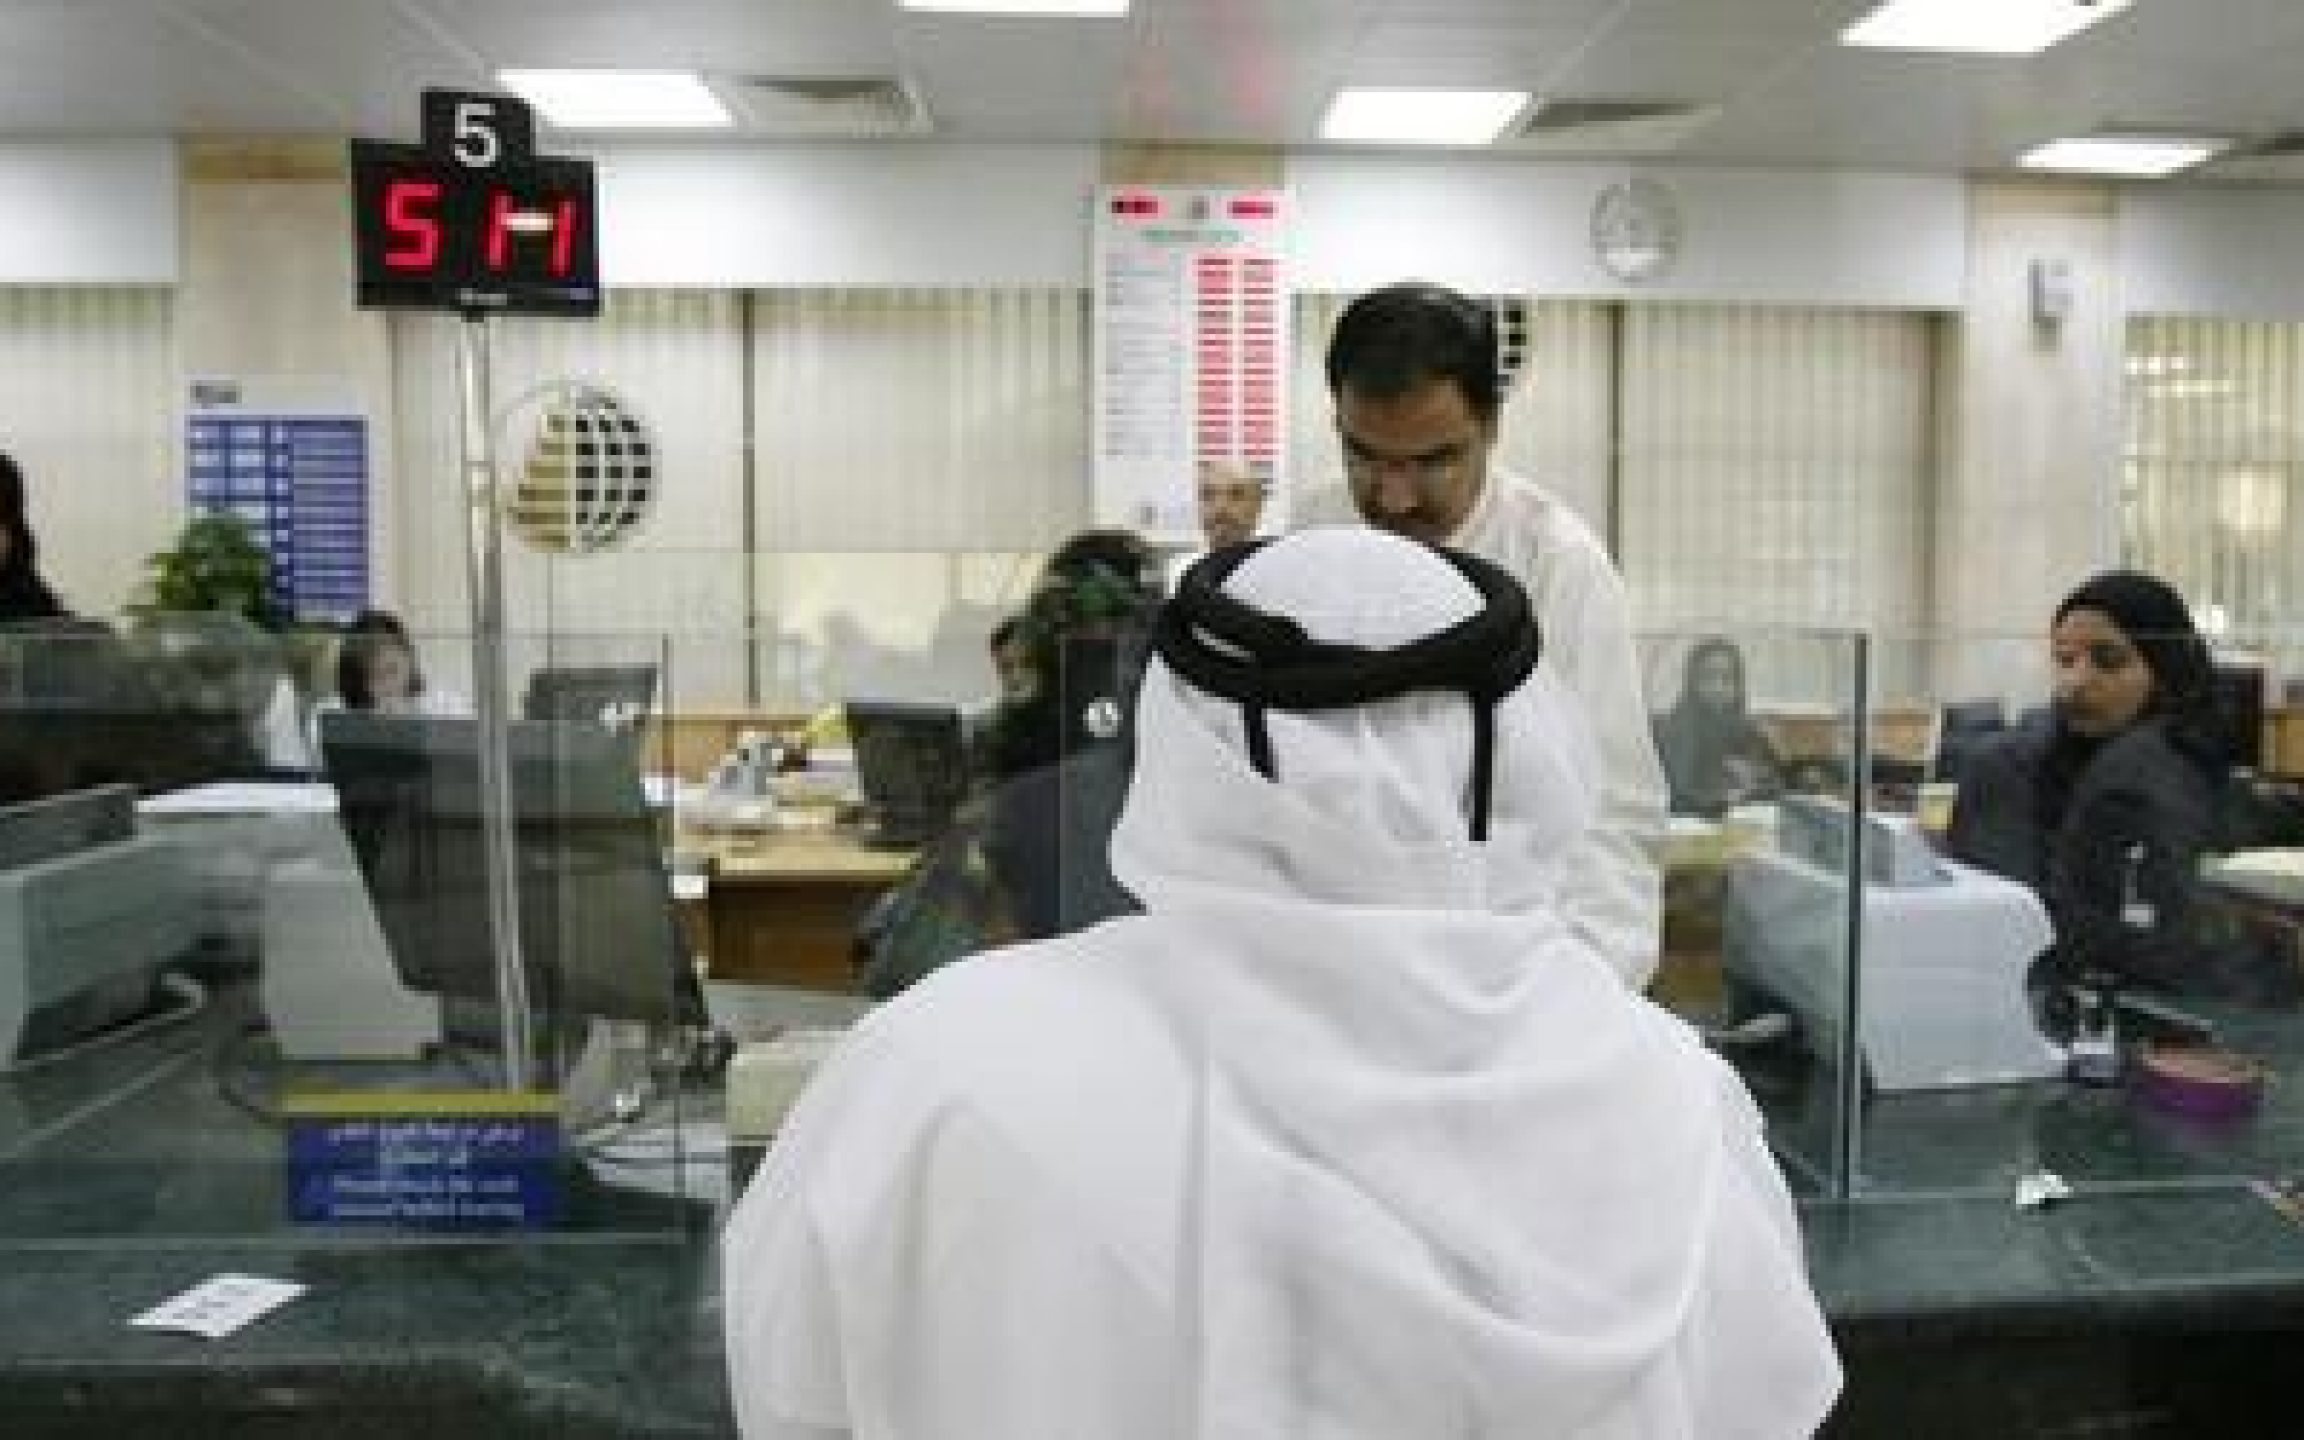 Low oil price reflects high pressure over UAE Banks